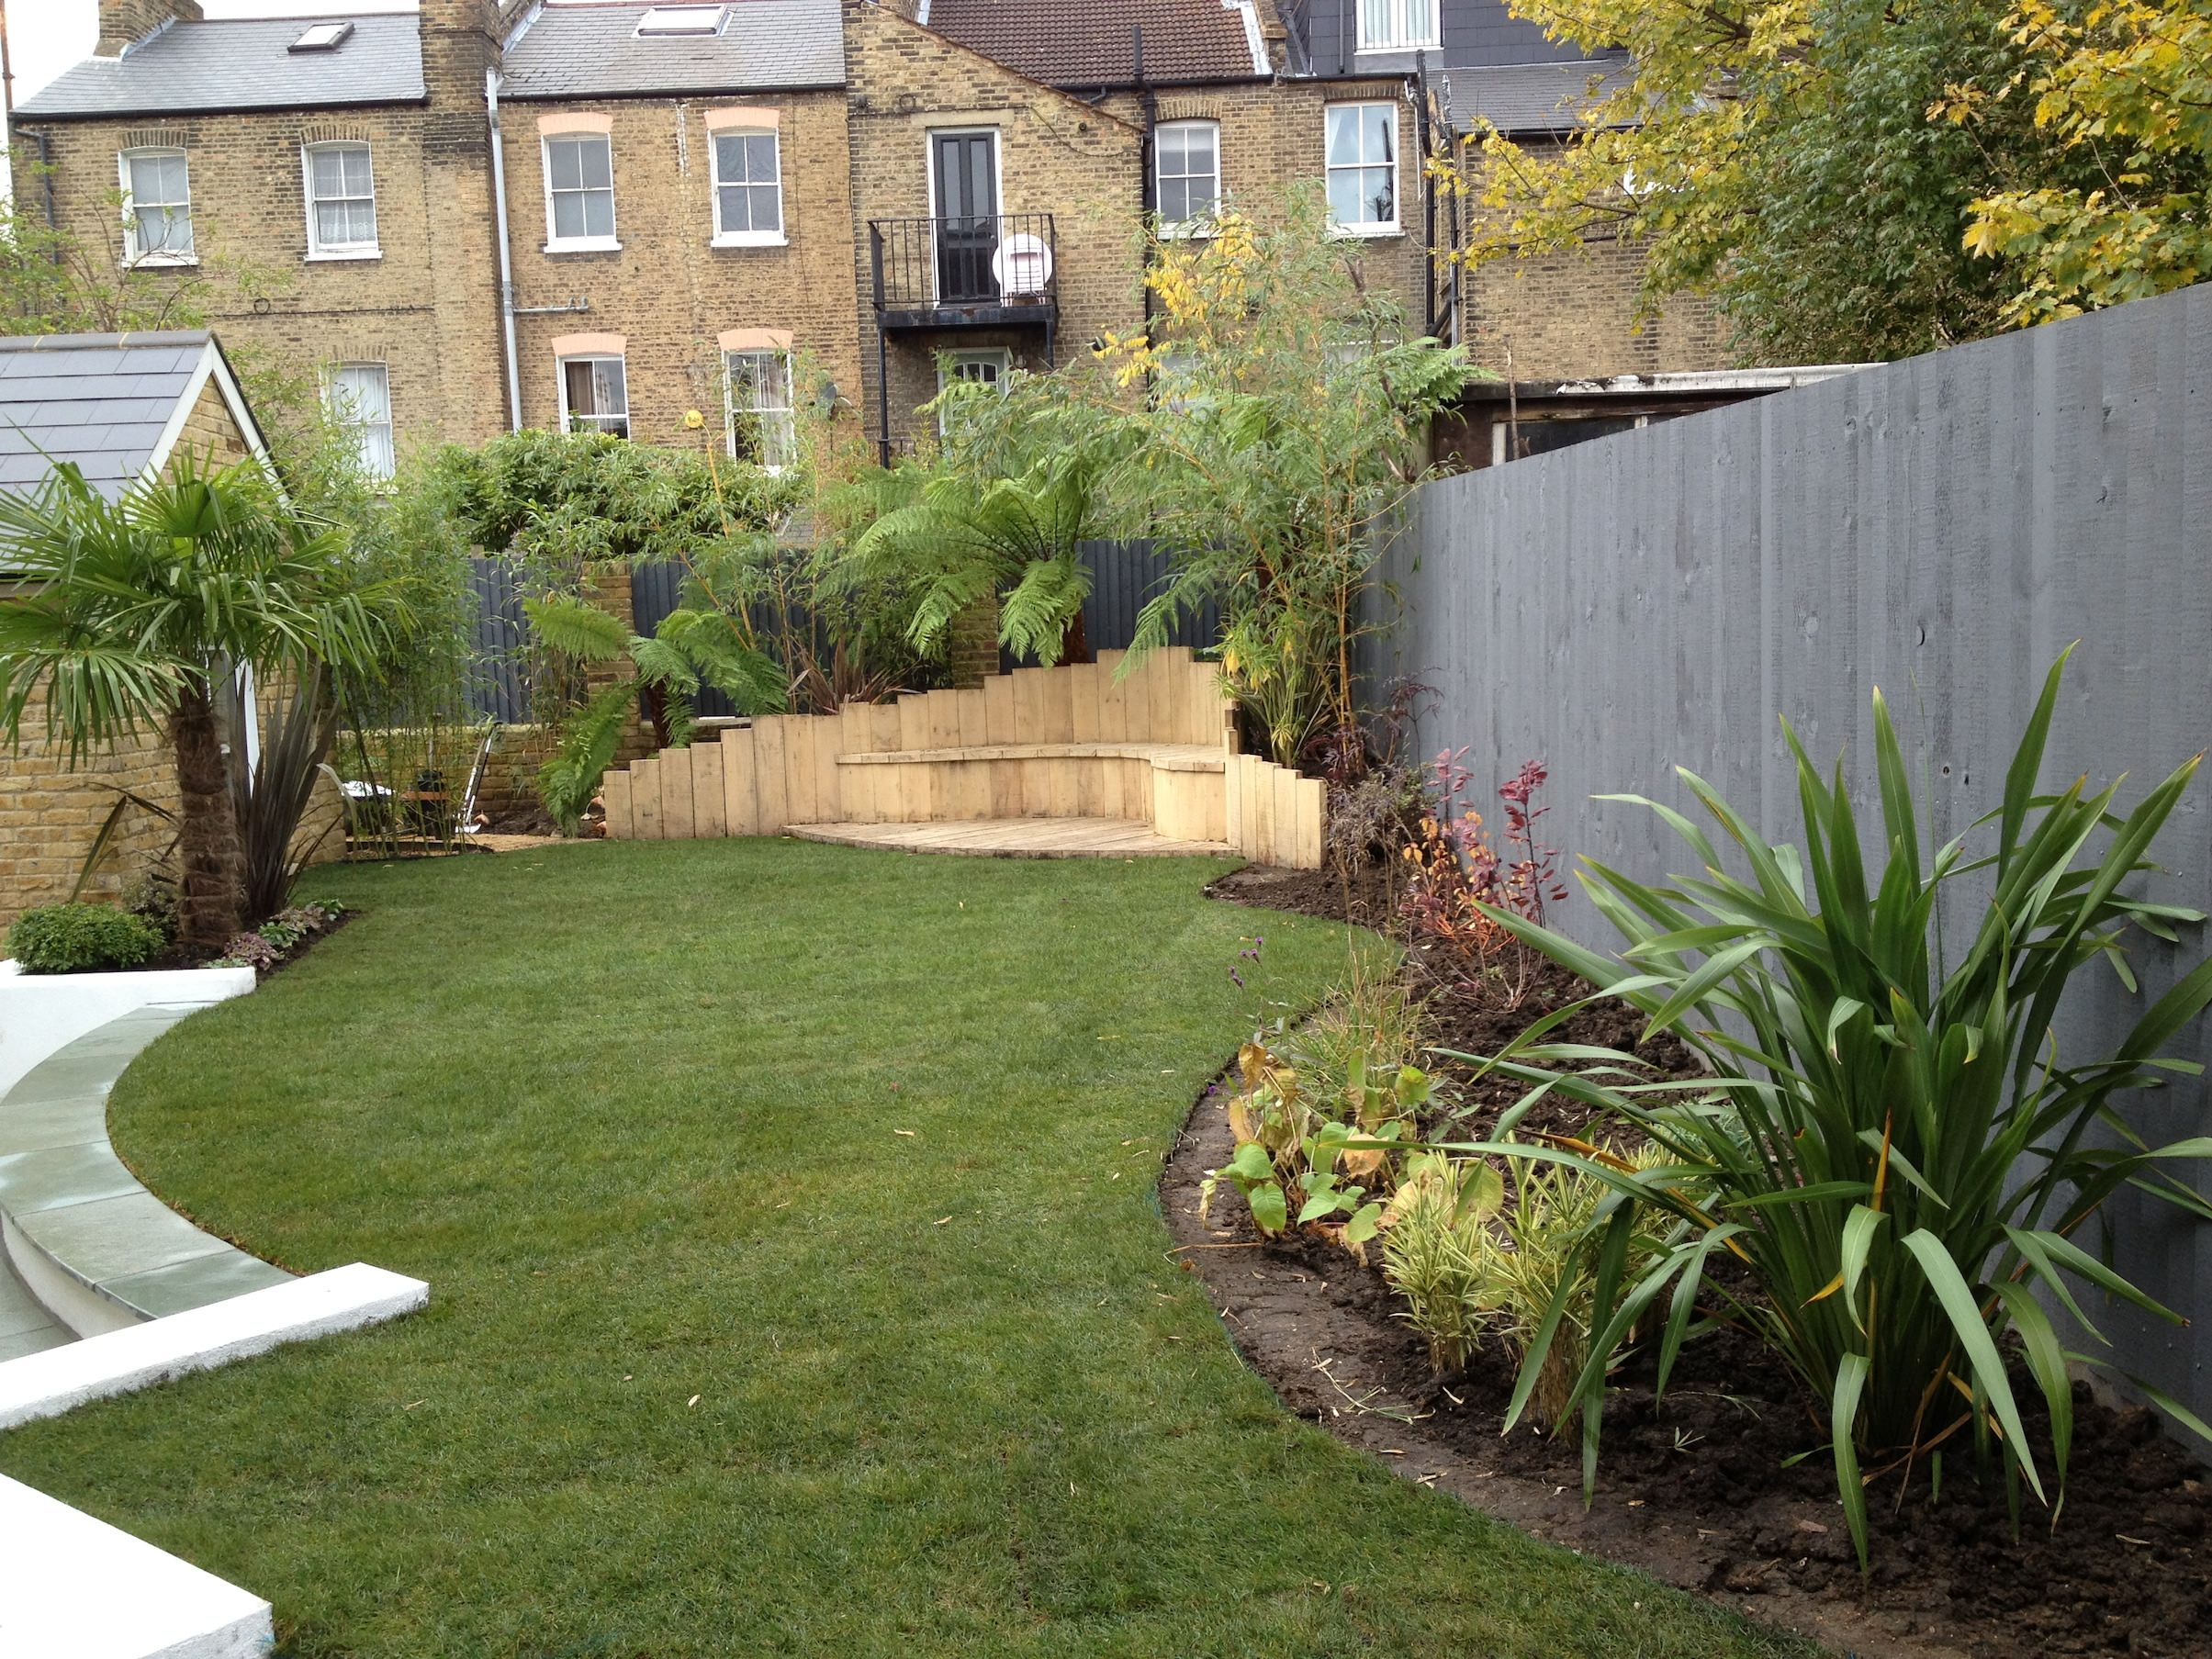 Low maintenance garden designs garden club london for Garden design pictures